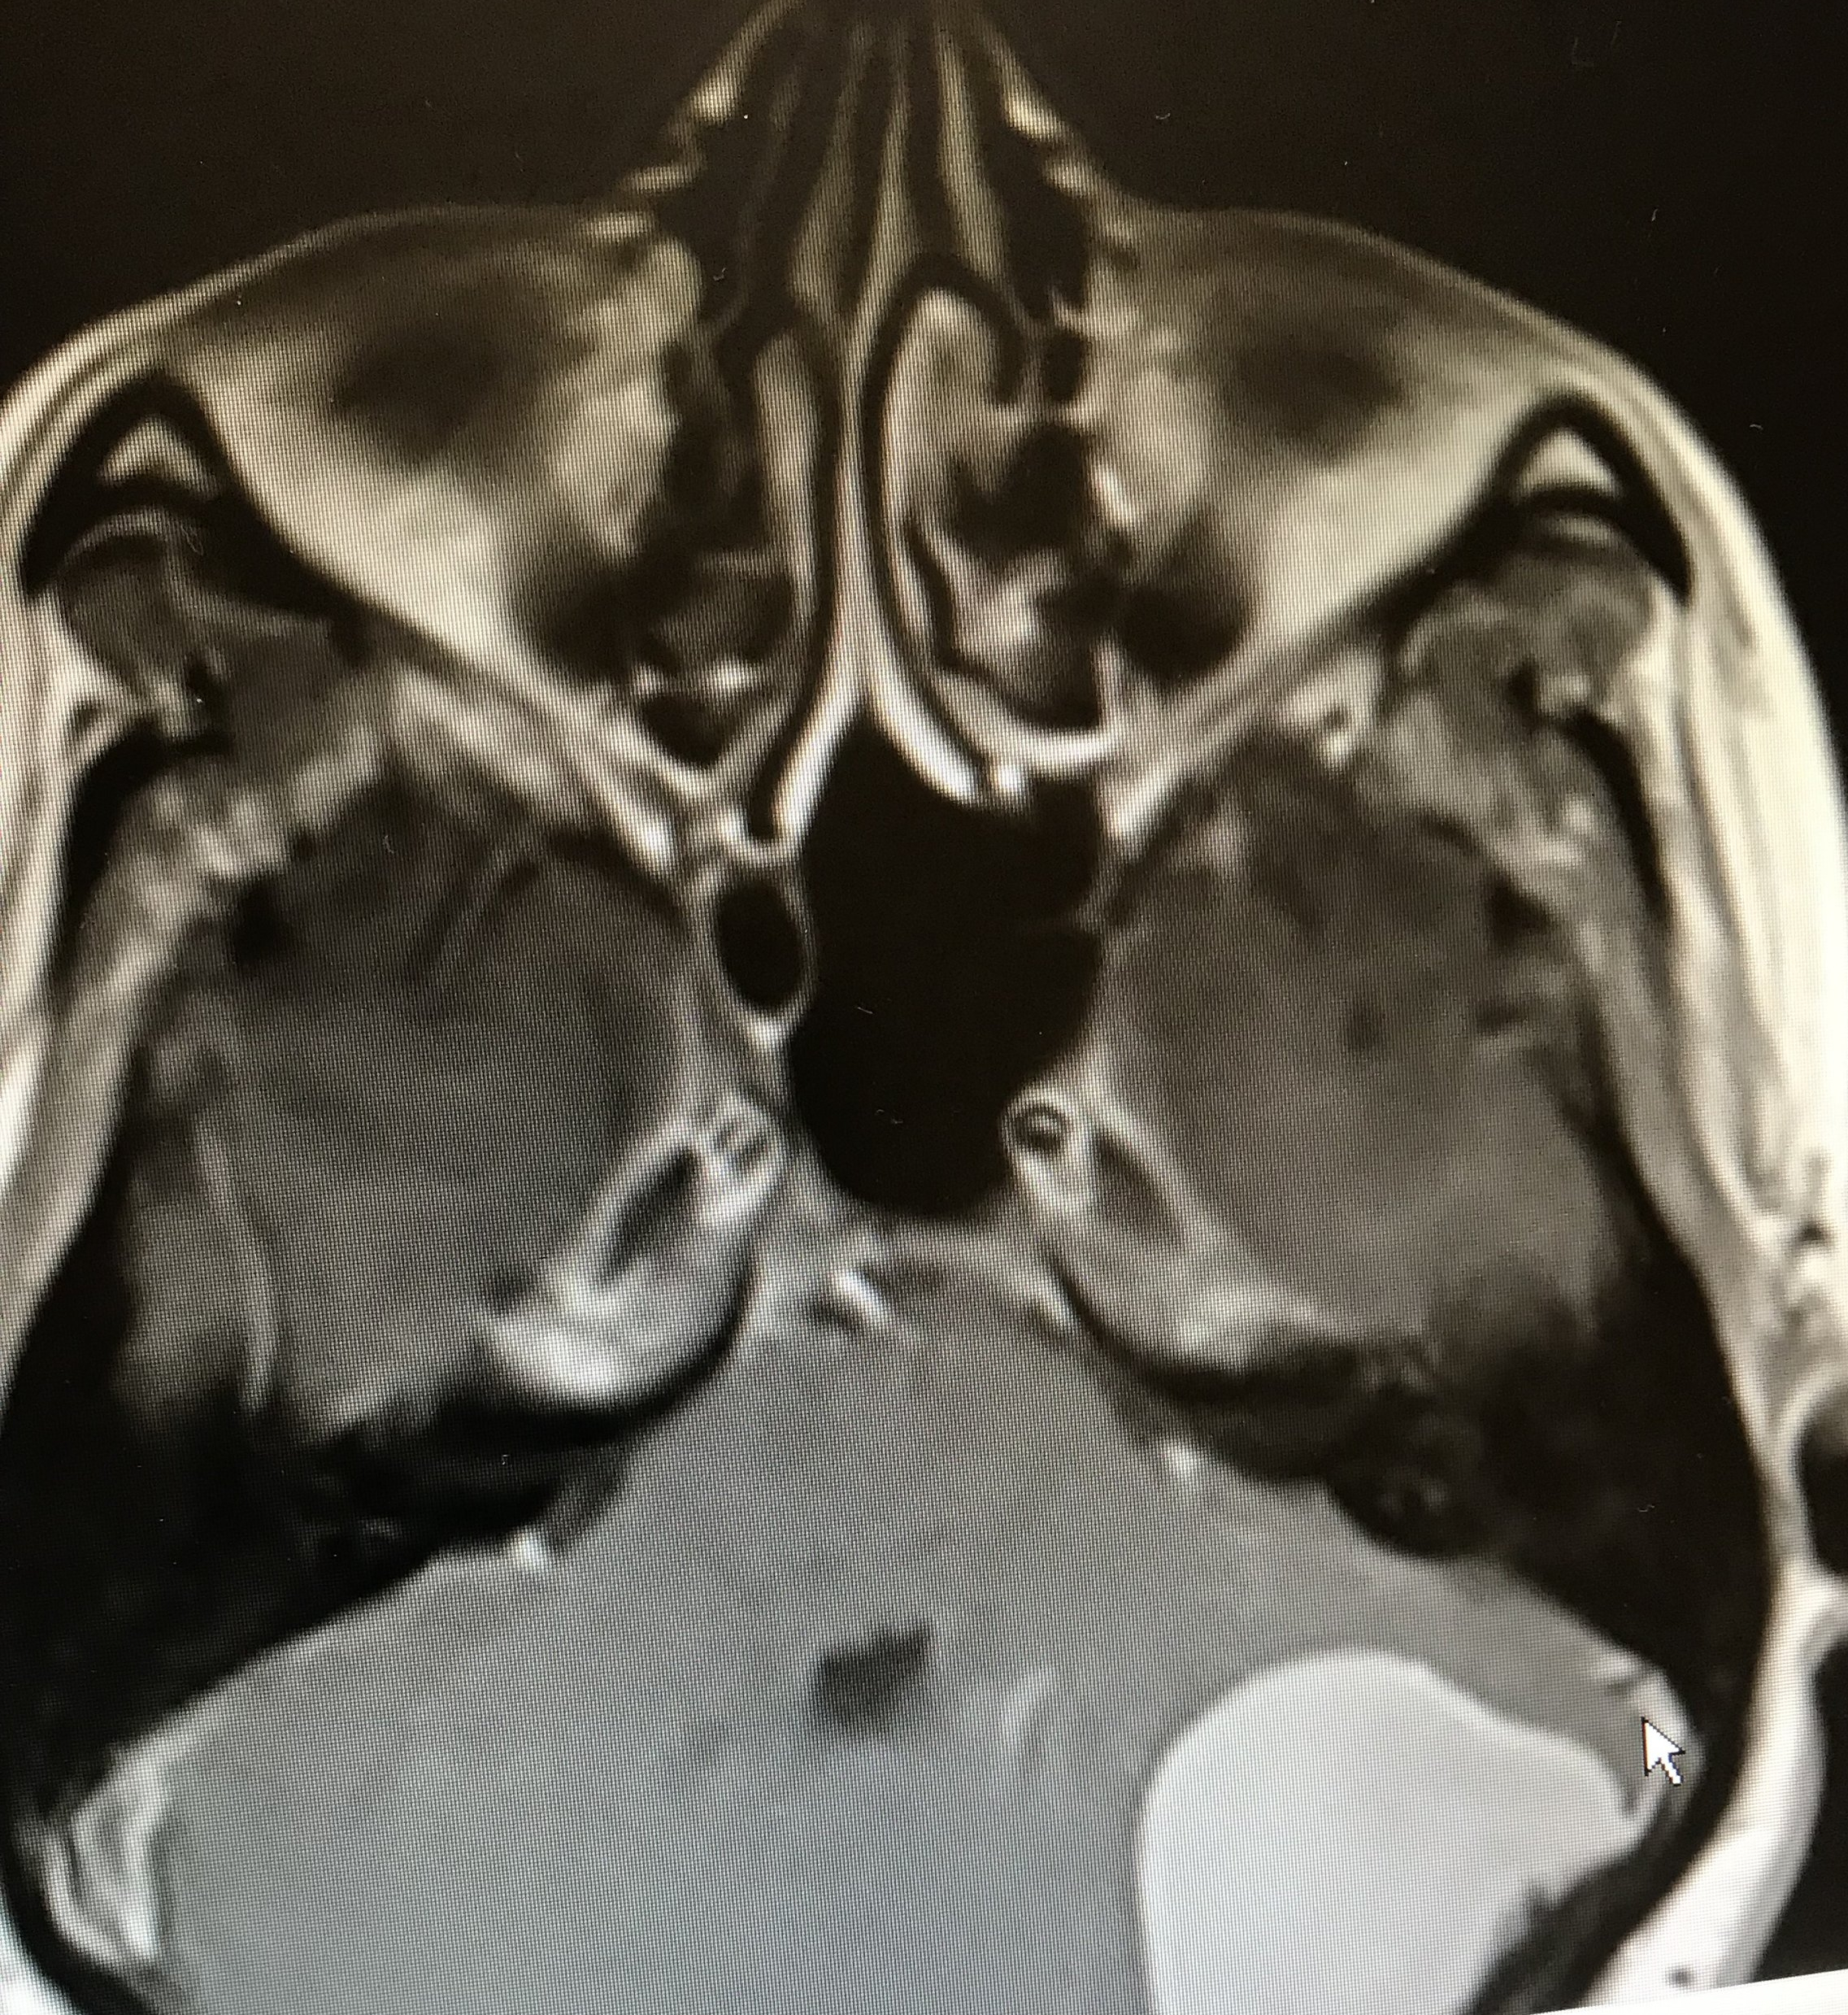 Brain Tumors - We treat meningiomas, gliomas, pituitary adenomas, vestibular schwannomas, and metastatic brain tumors utilizing tools such as tractography, frameless stereotactic navigation, evoked potentials, and endoscopic methods when appropriate.